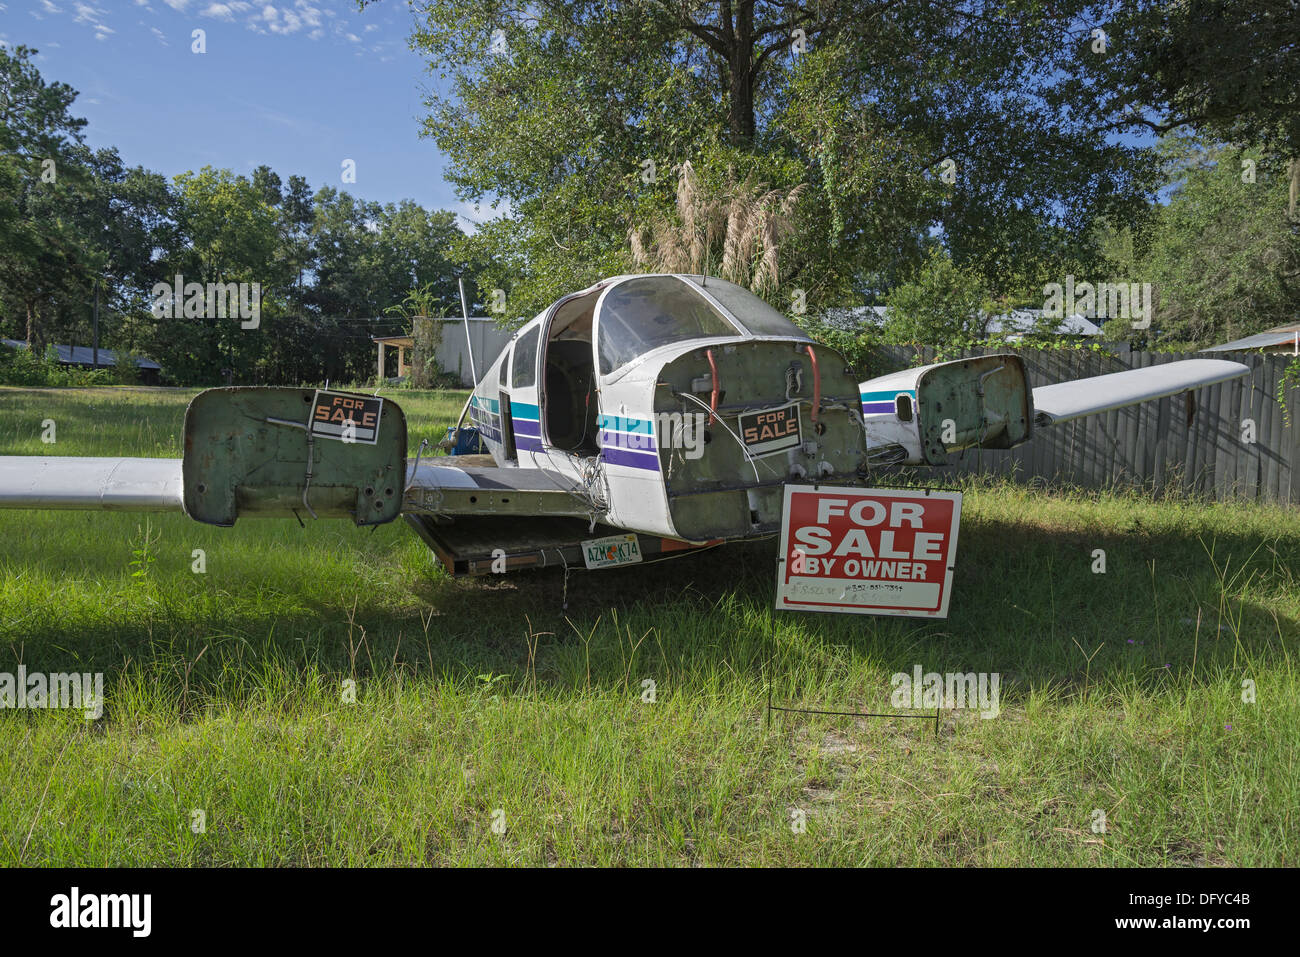 Airplane Parts Stock Photos & Airplane Parts Stock Images - Alamy